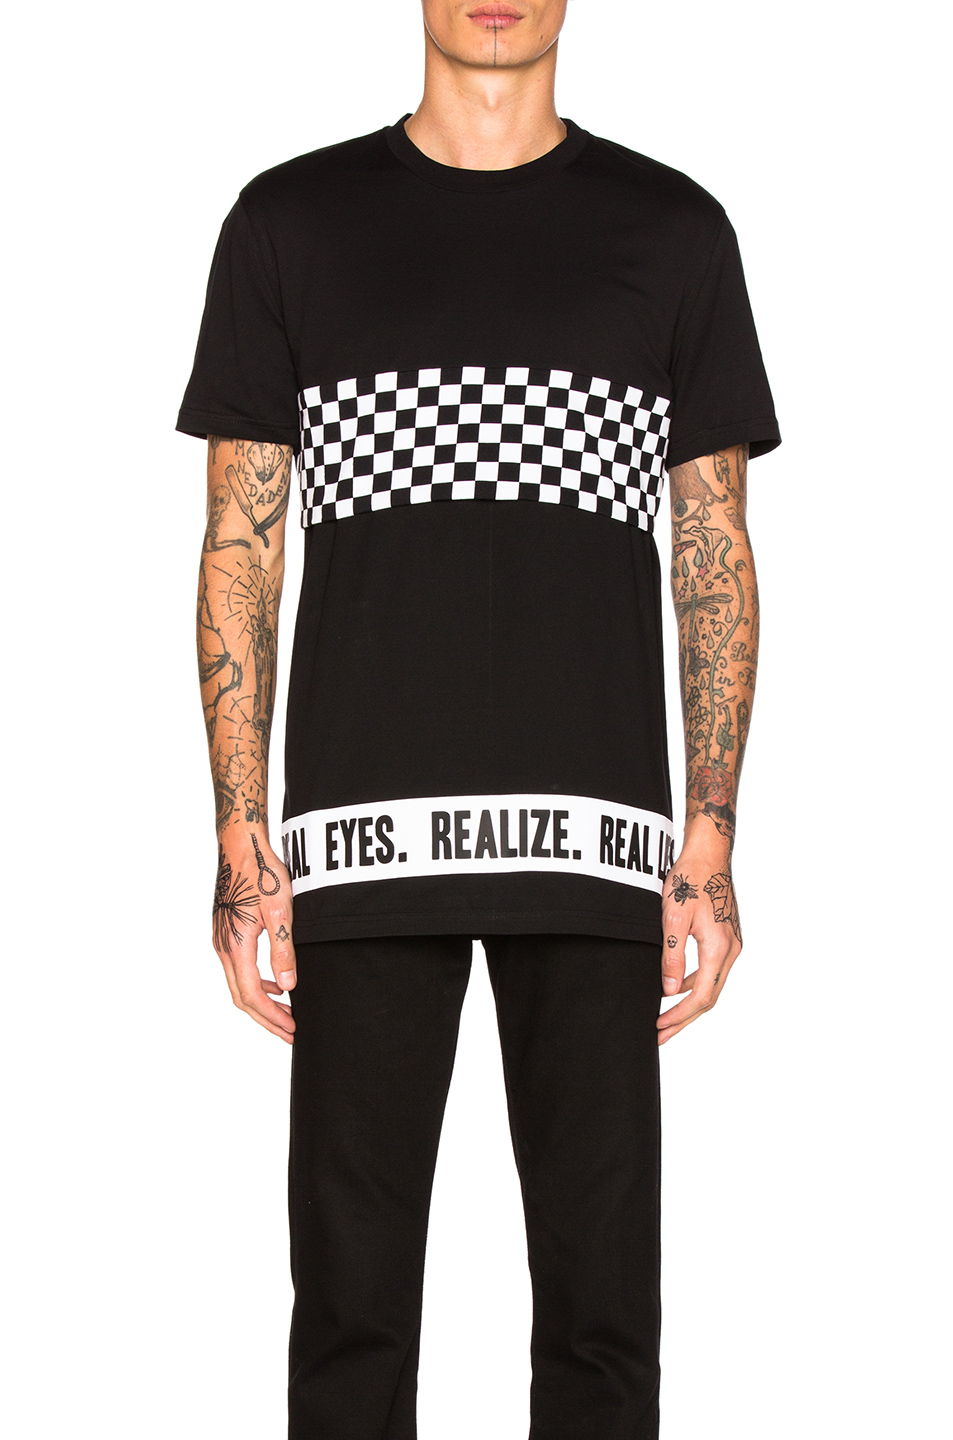 Givenchy Cropped Checkerboard Tee in Black,Checkered & Plaid